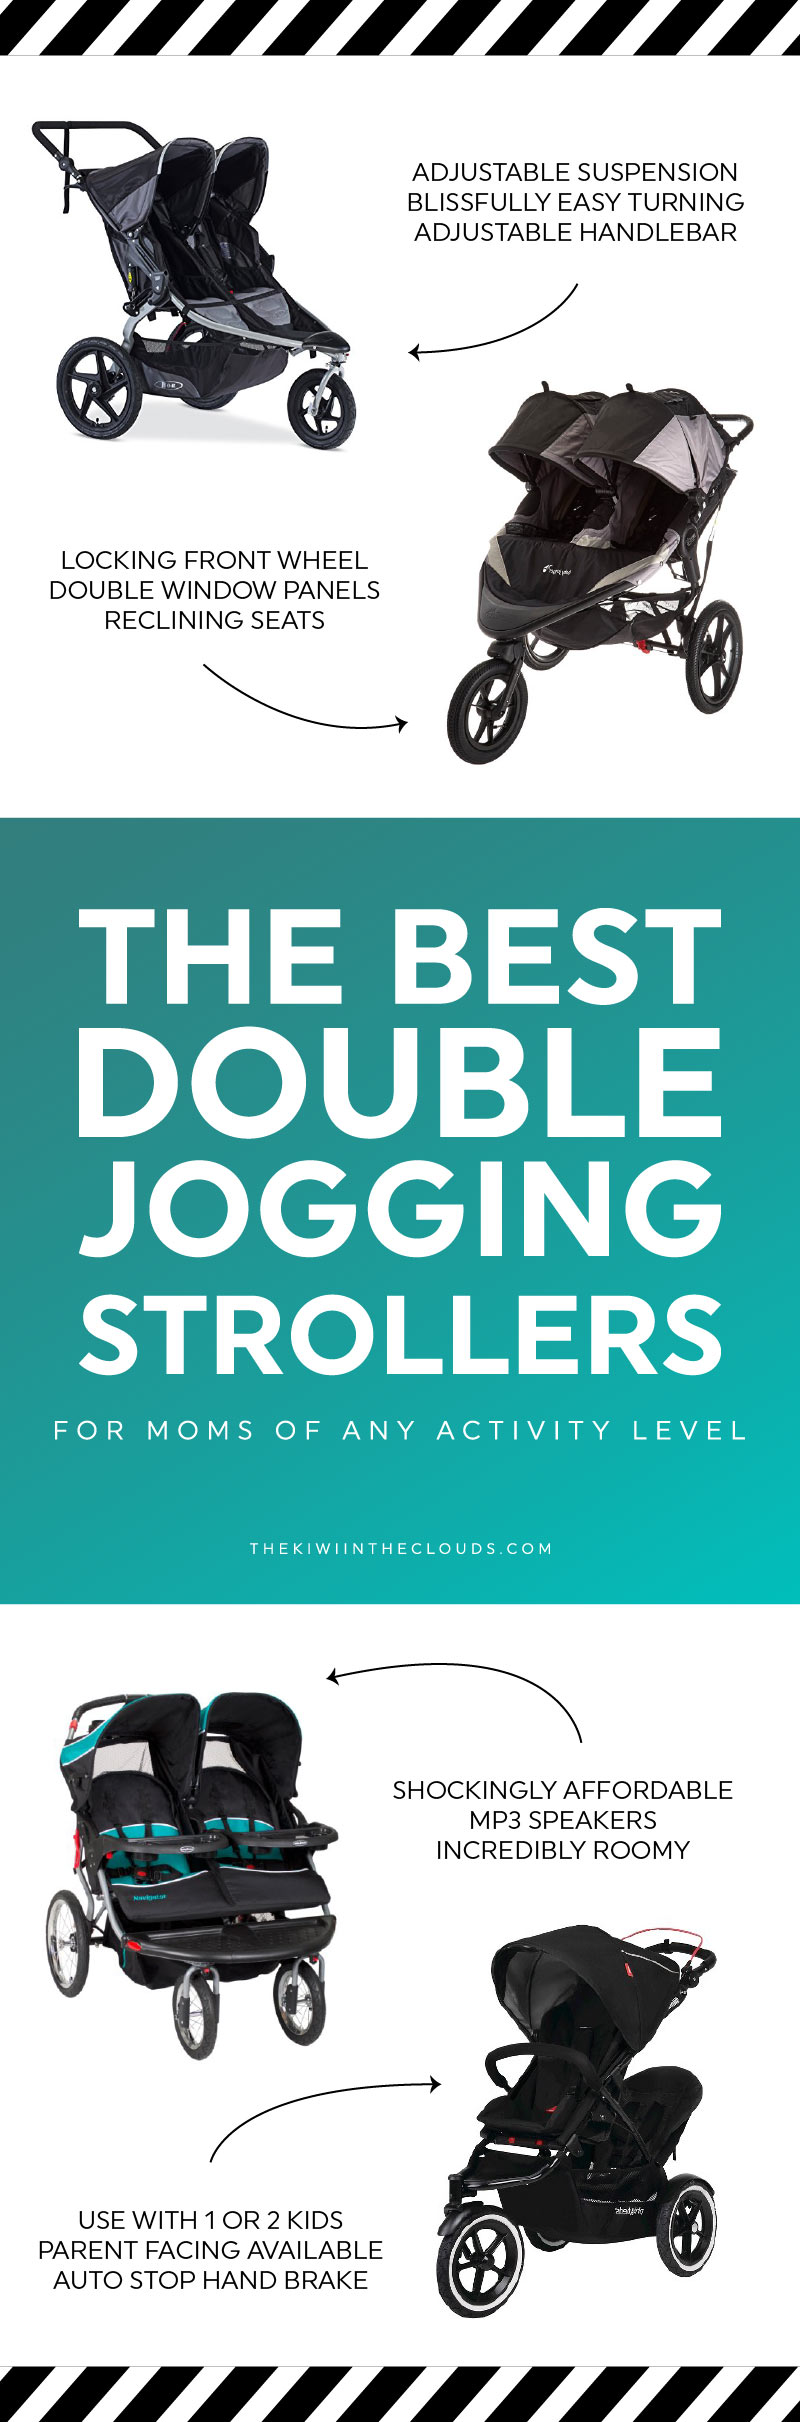 Find The Best Double Jogging Stroller For Moms Of Any